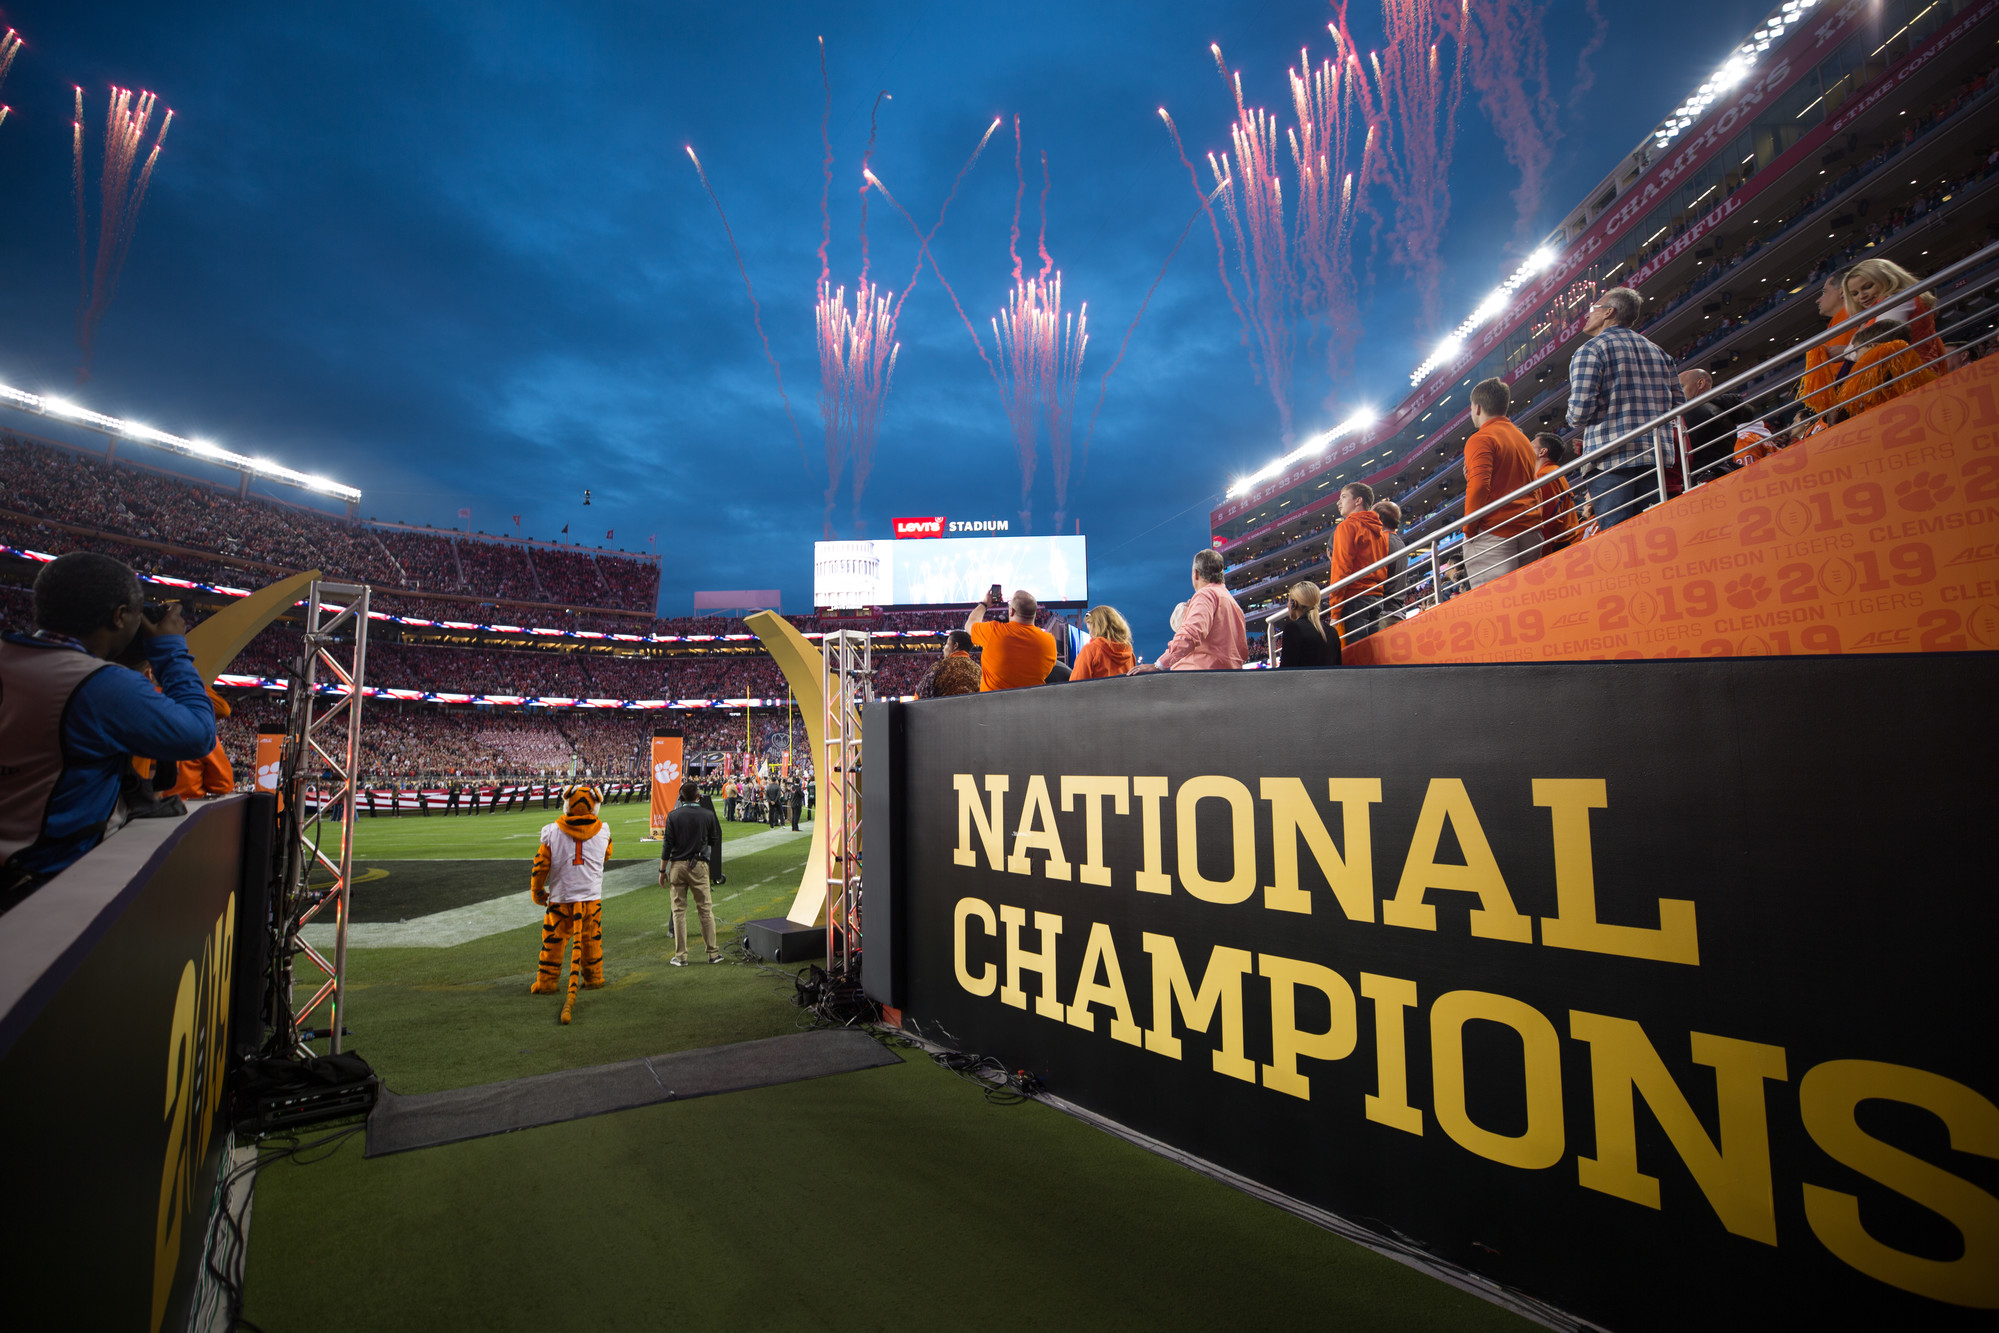 Levi's Stadium in Santa Clara, California, on Monday, Jan. 7 before the 2019 CFP National Championship game kicks off. Clemson routed Alabama to win 44-16.